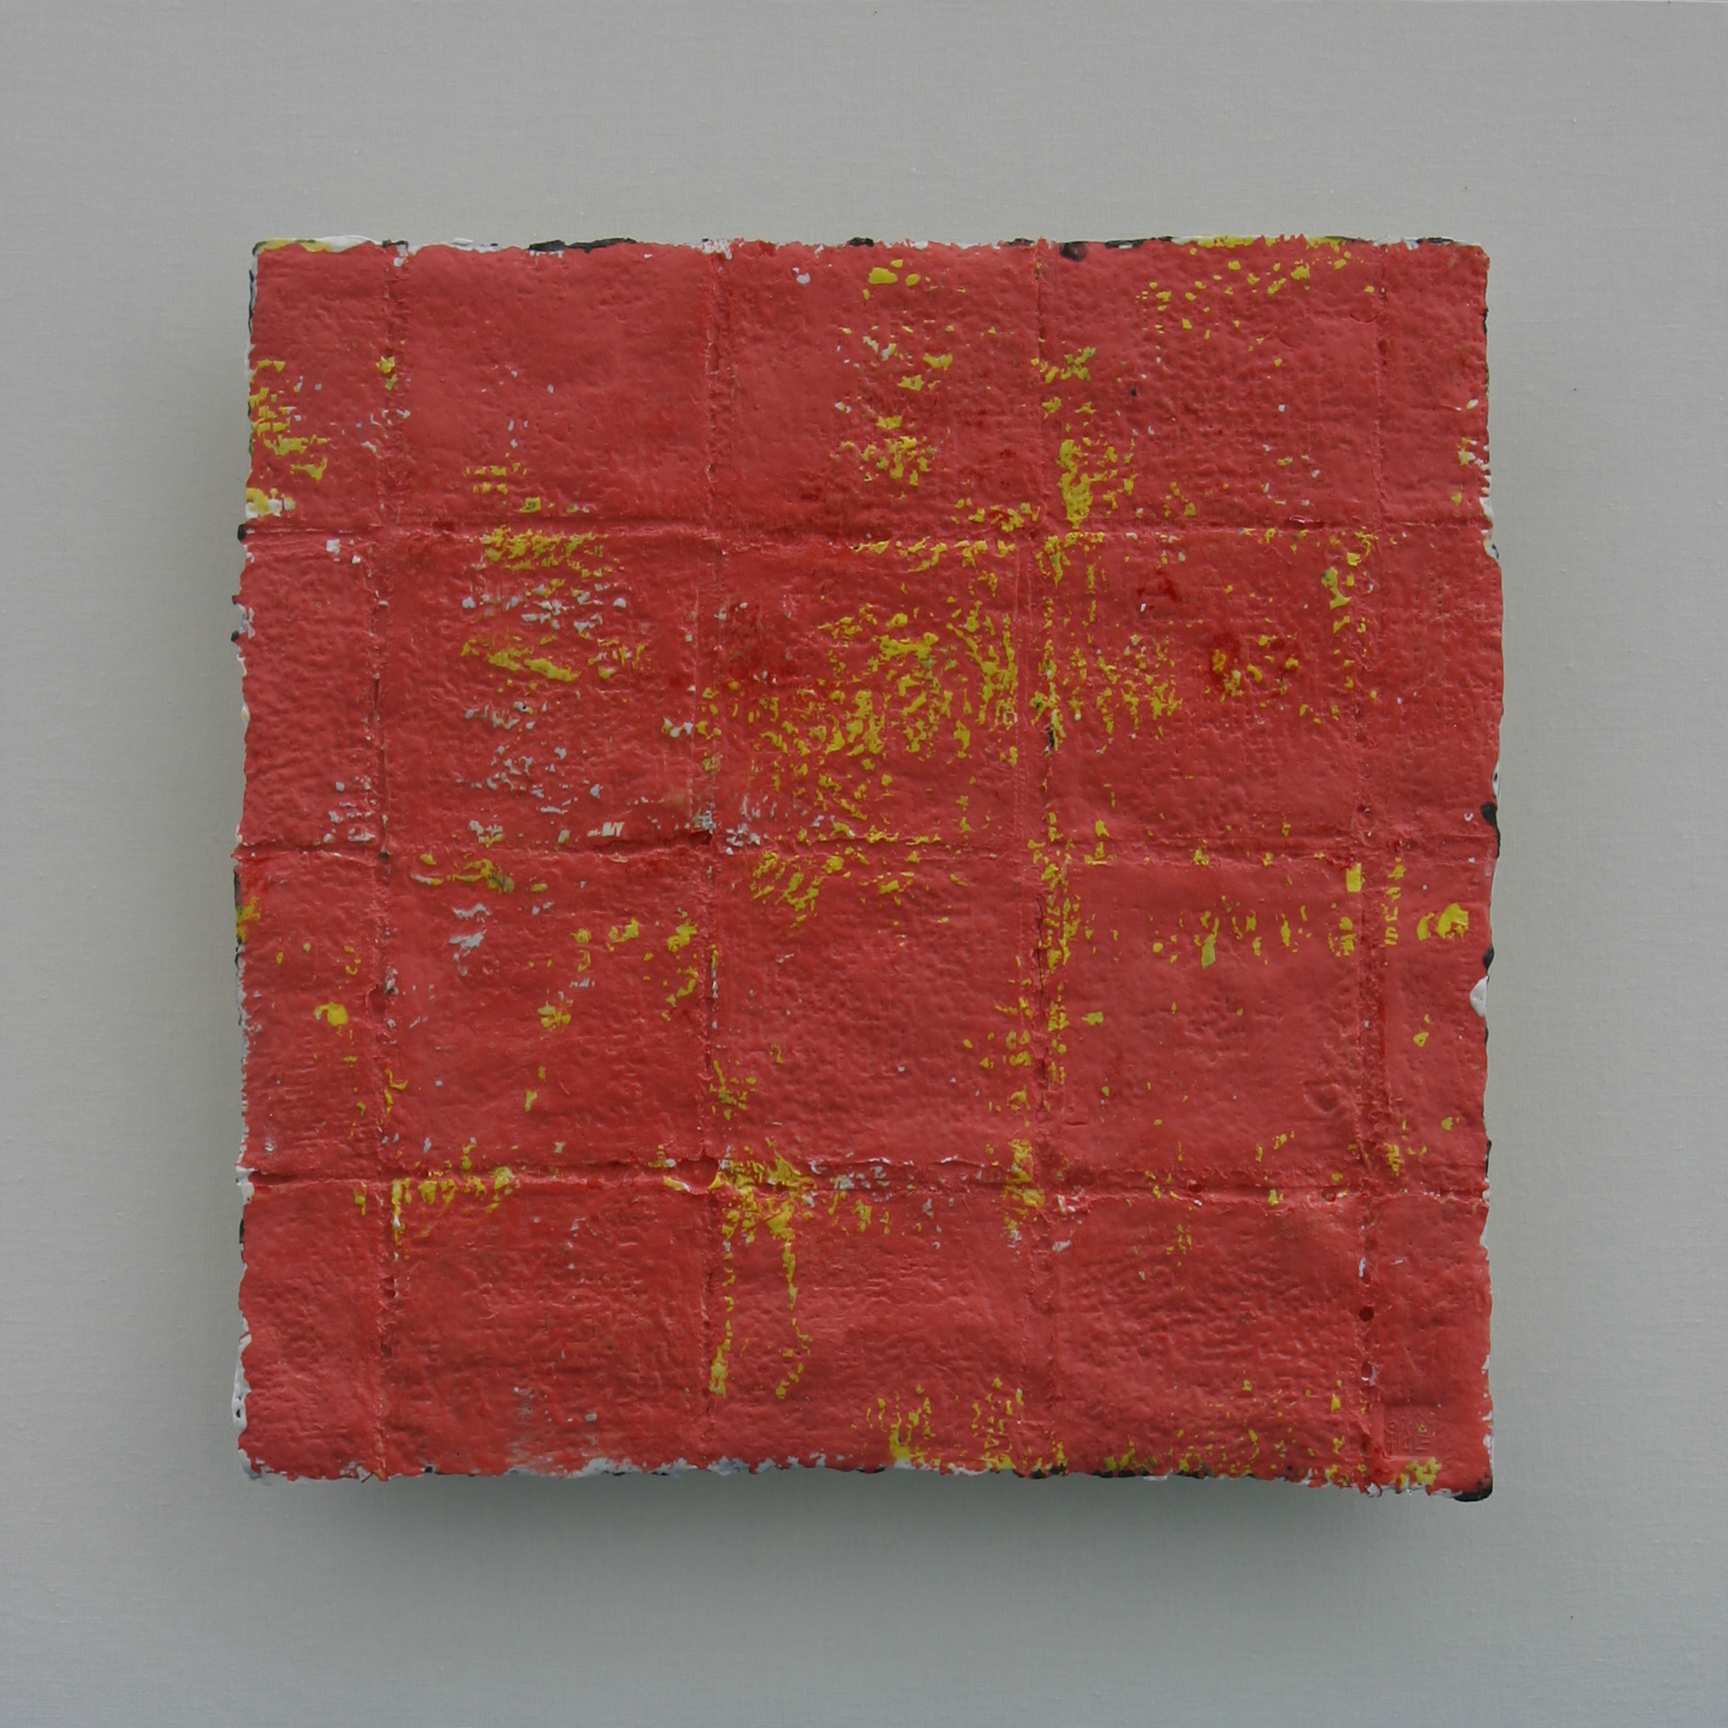 2013_Bank art Fair_Loss-Concealment 1305_48 x 7 x 48 cm (2)